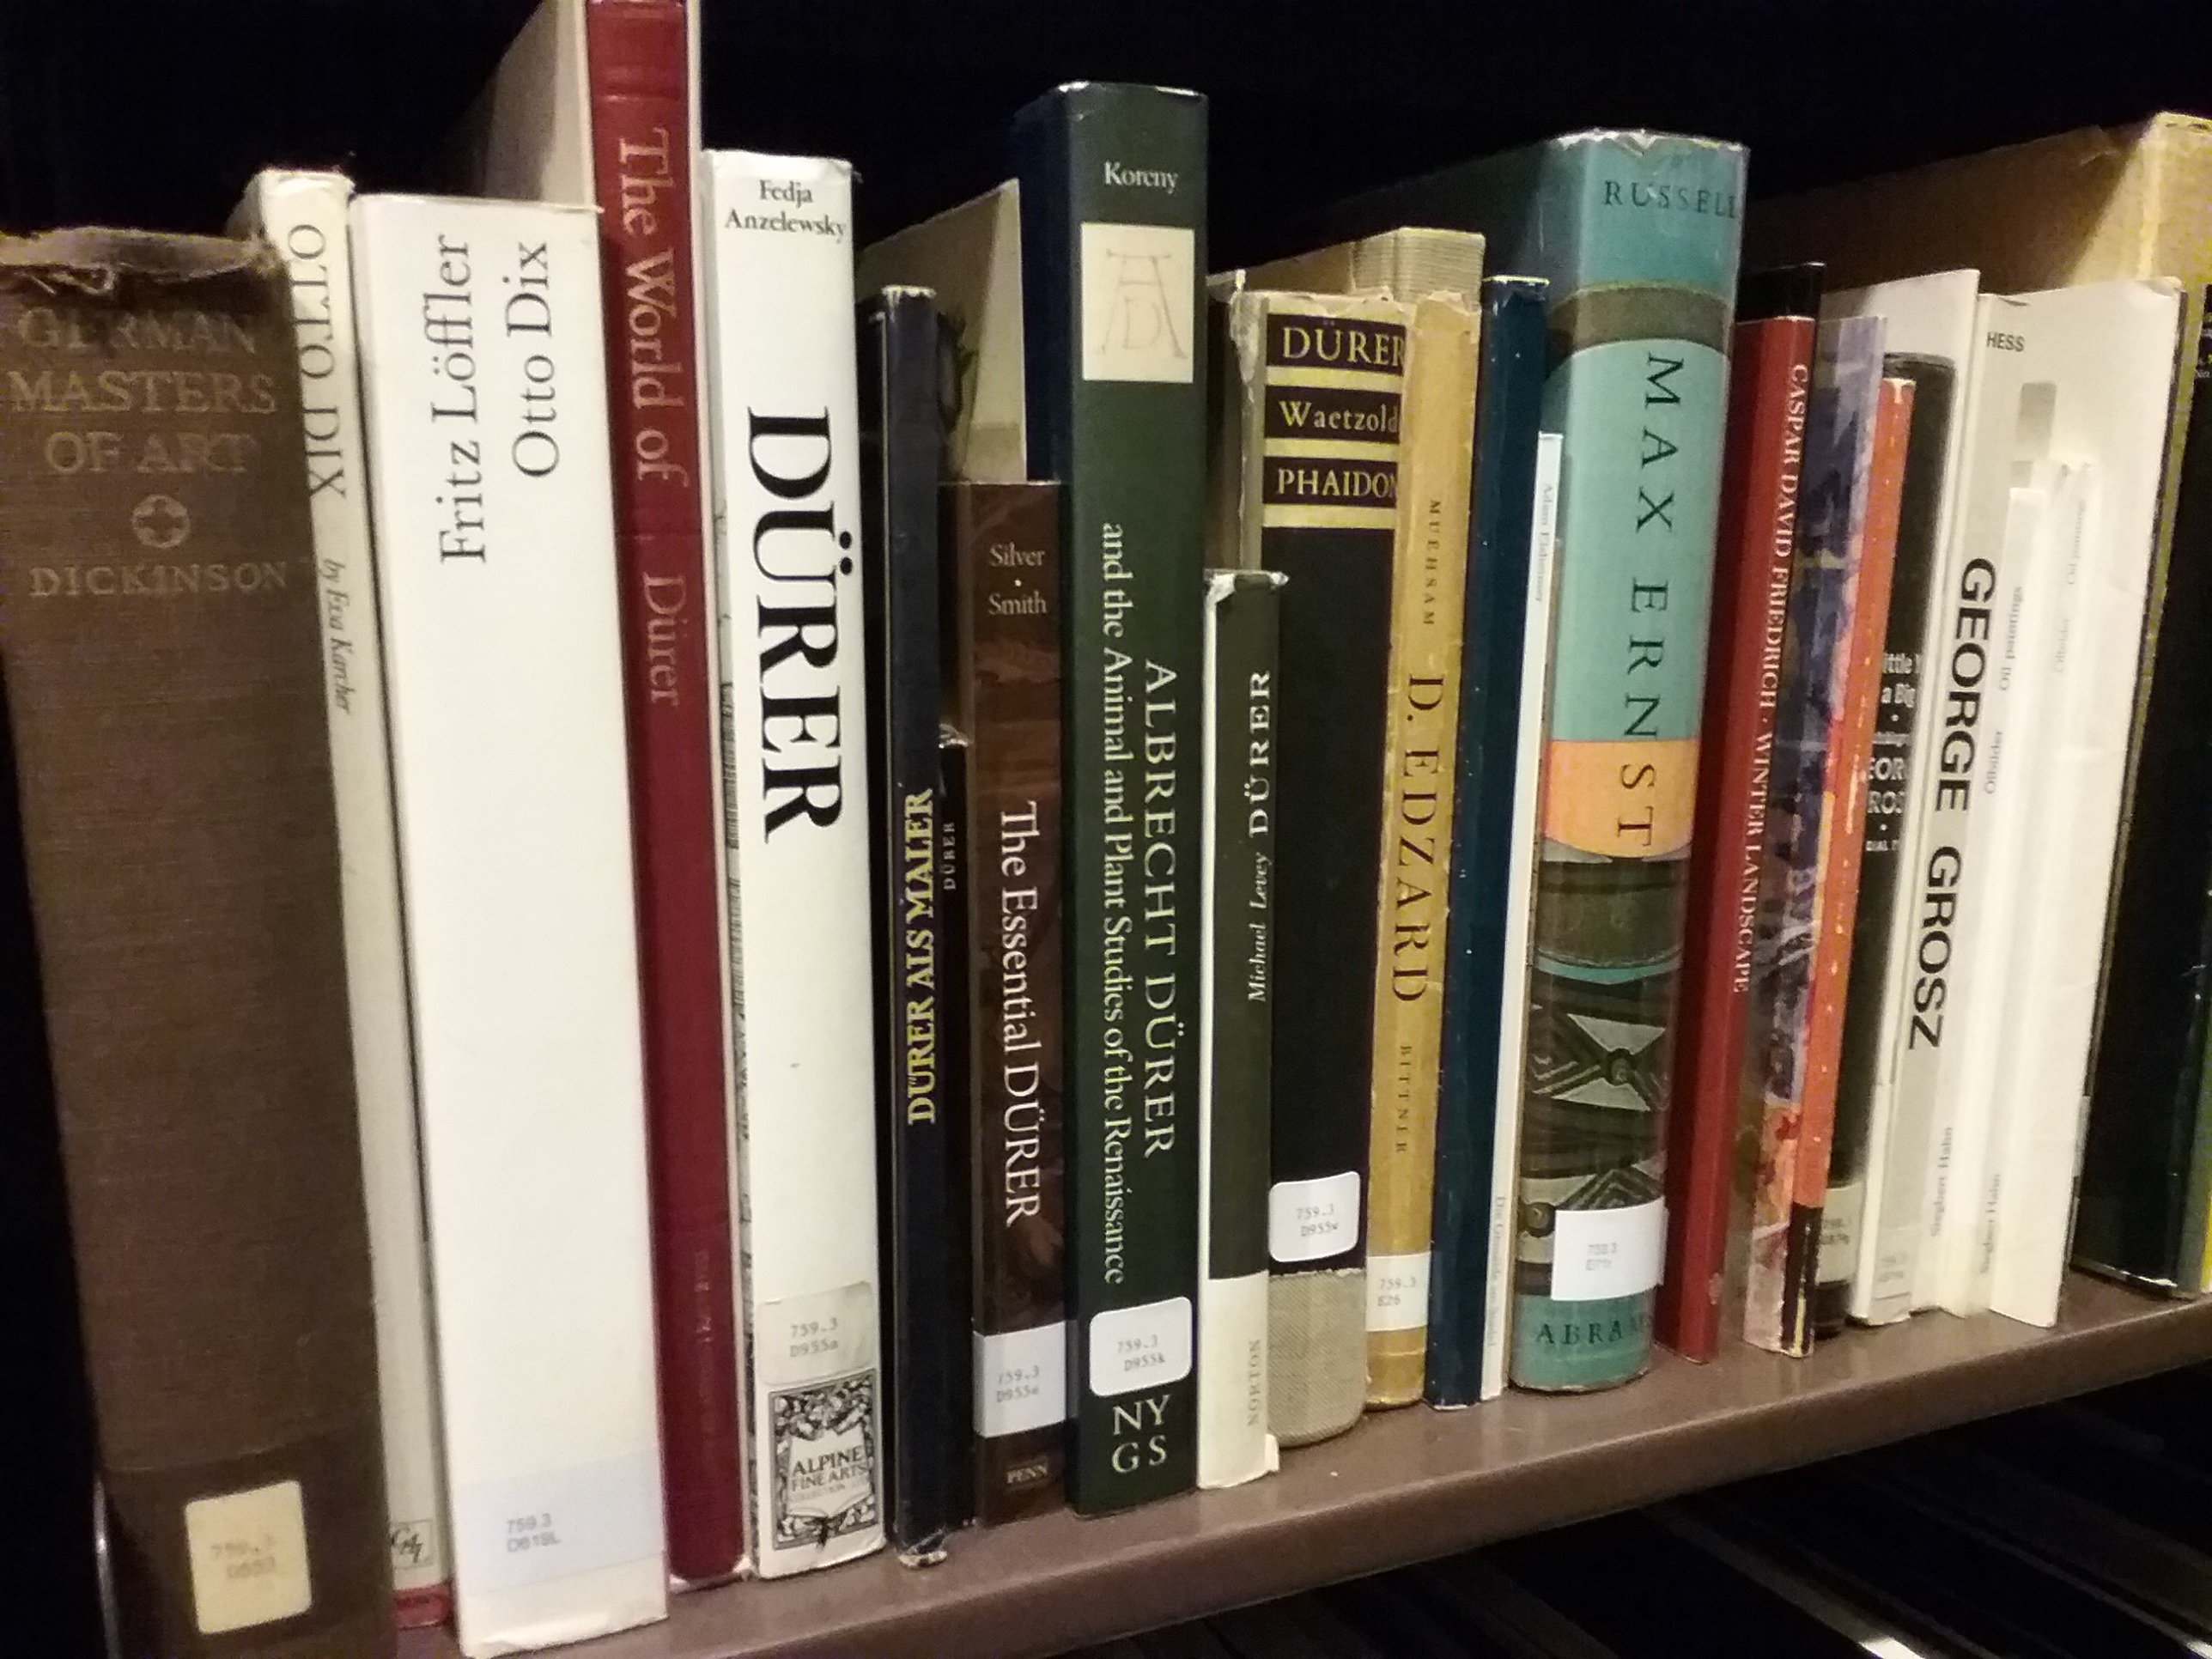 Some of the 20,000+ books in the library collection